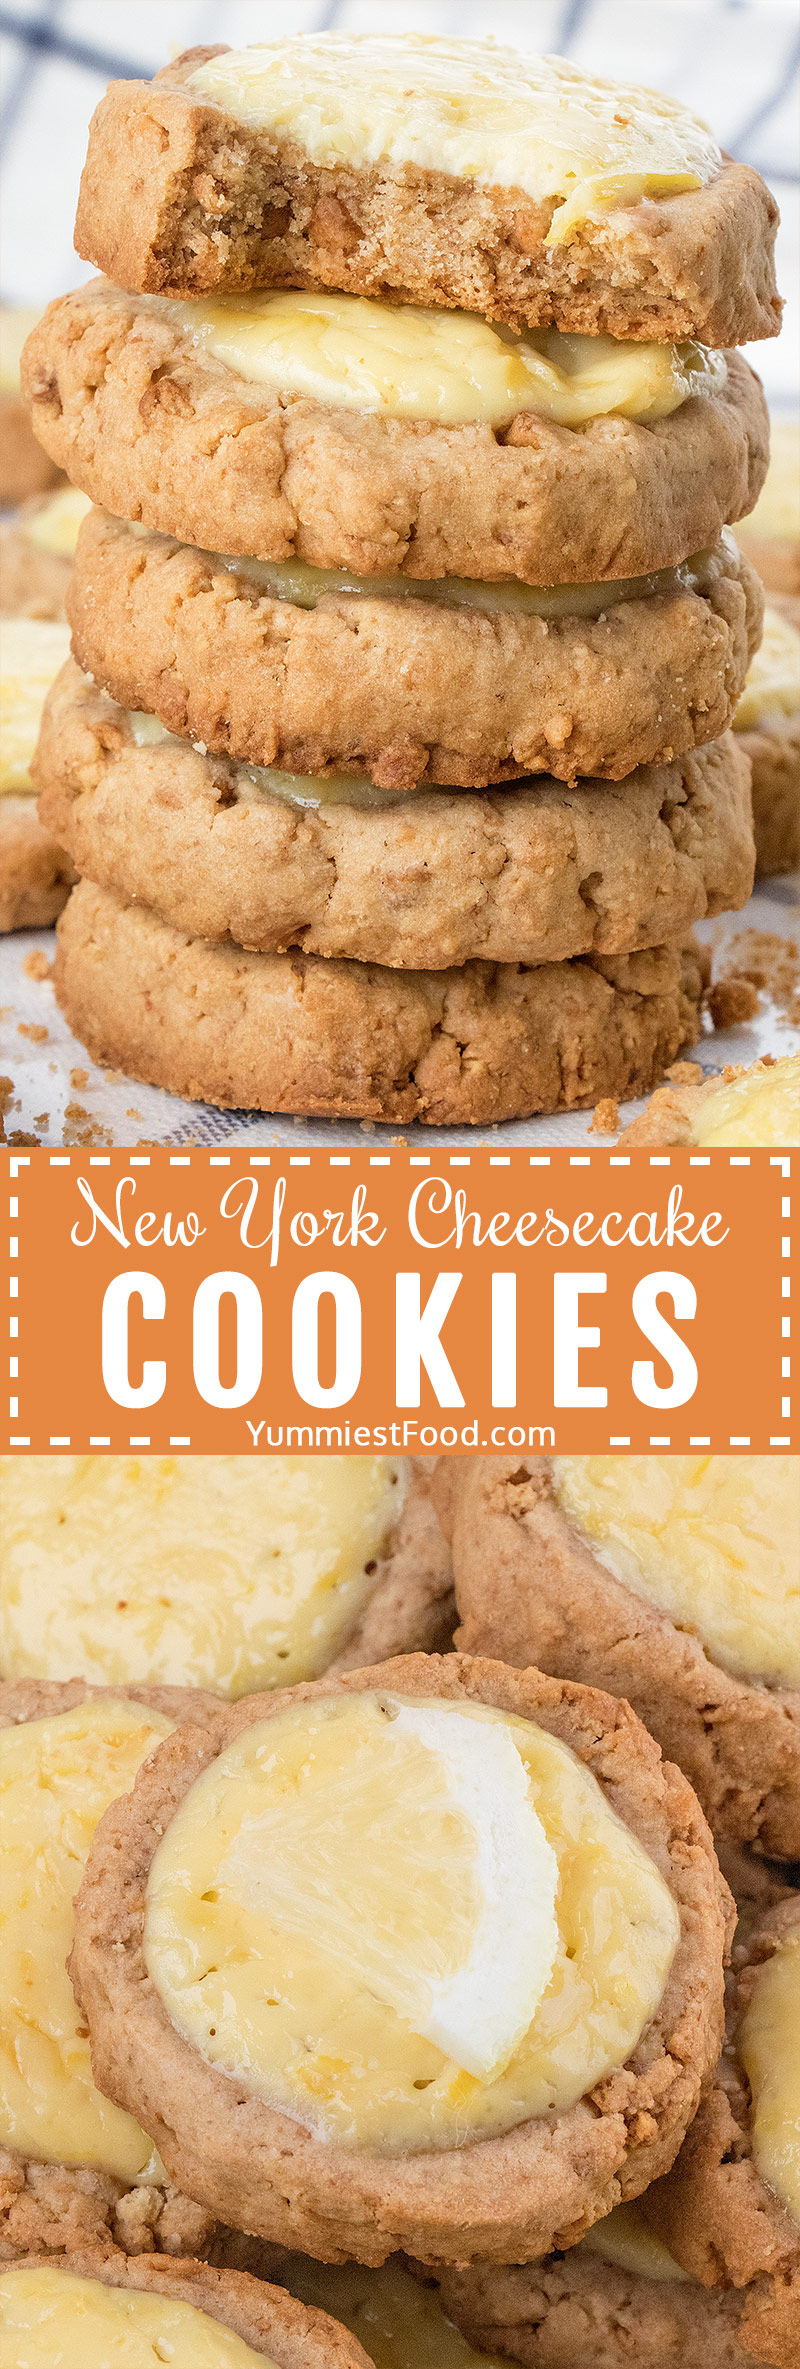 New York Cheesecake Cookies recipe from the scratch - crispy cookies topped with light refreshing cream cheese and lemon cream